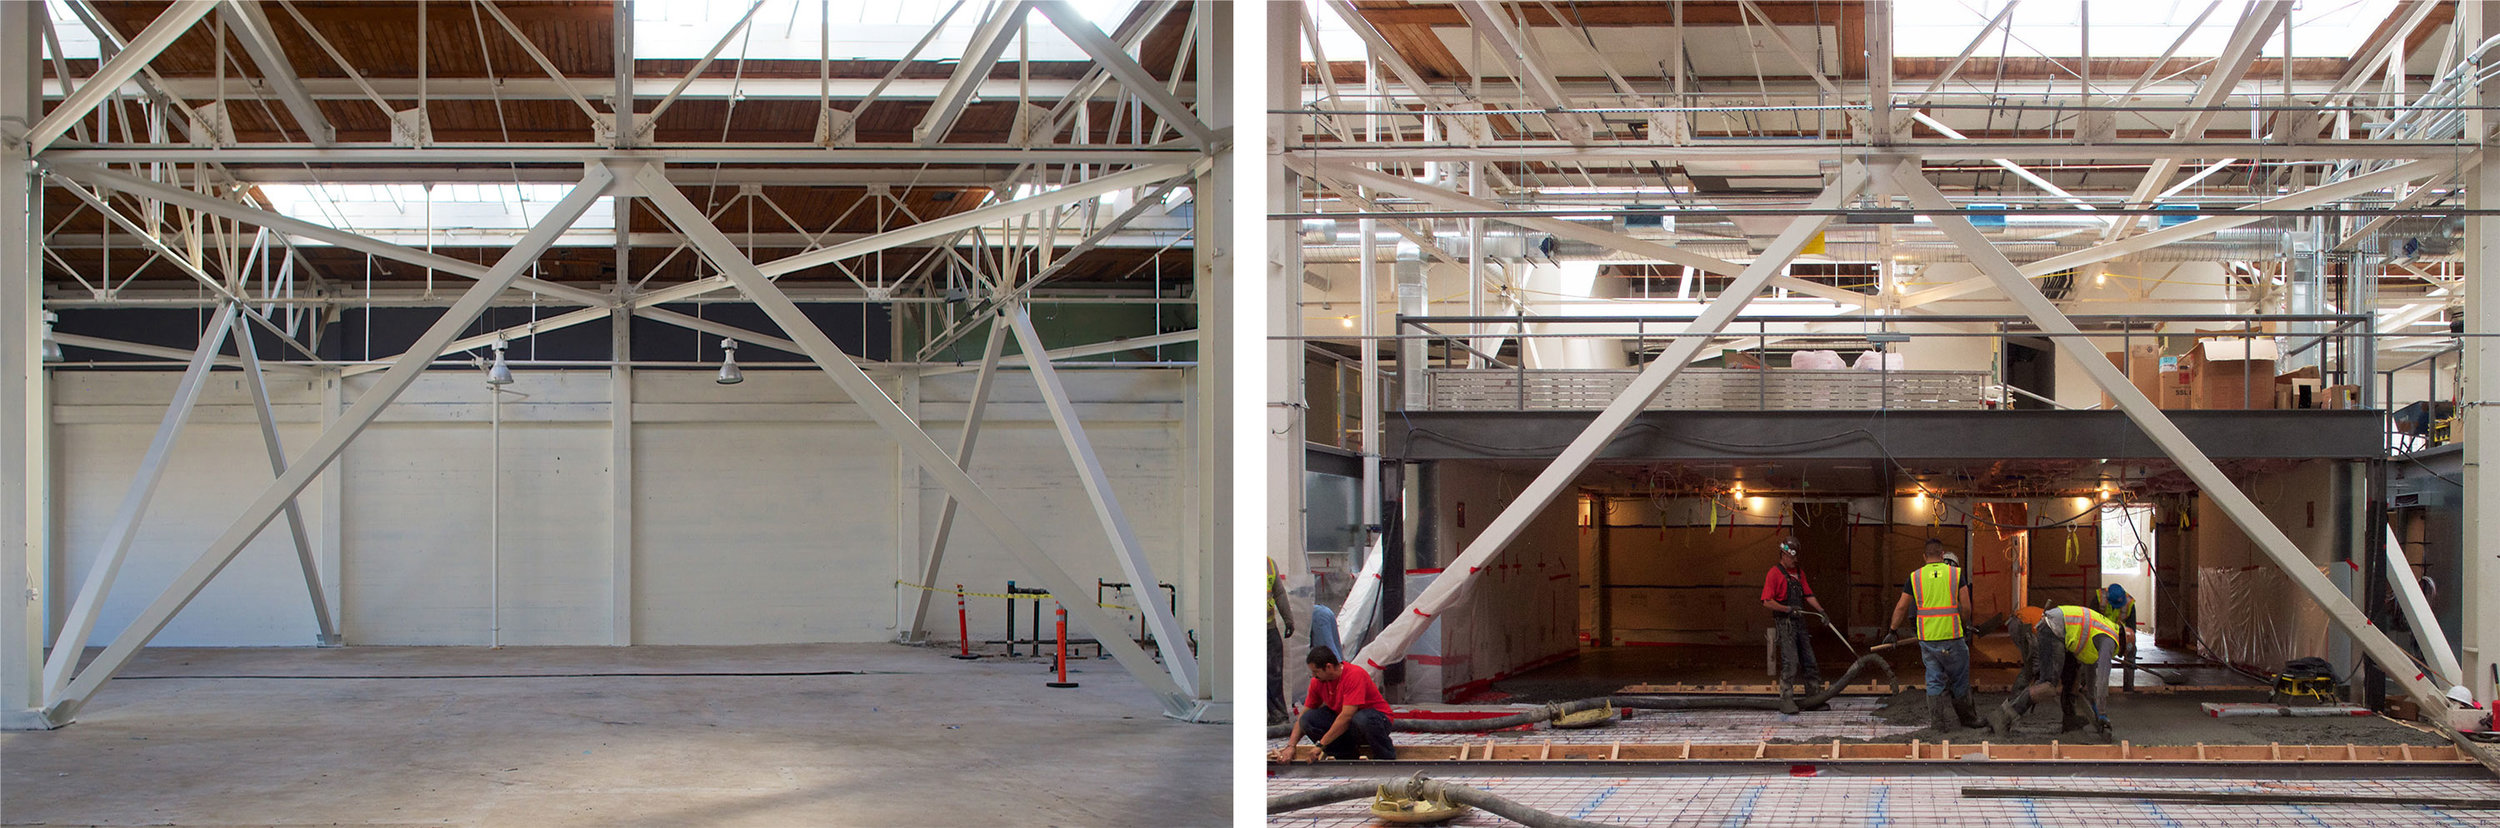 San Francisco Workplace, Office, Adaptive Reuse, Tech Company, Before After, Construction, Steel